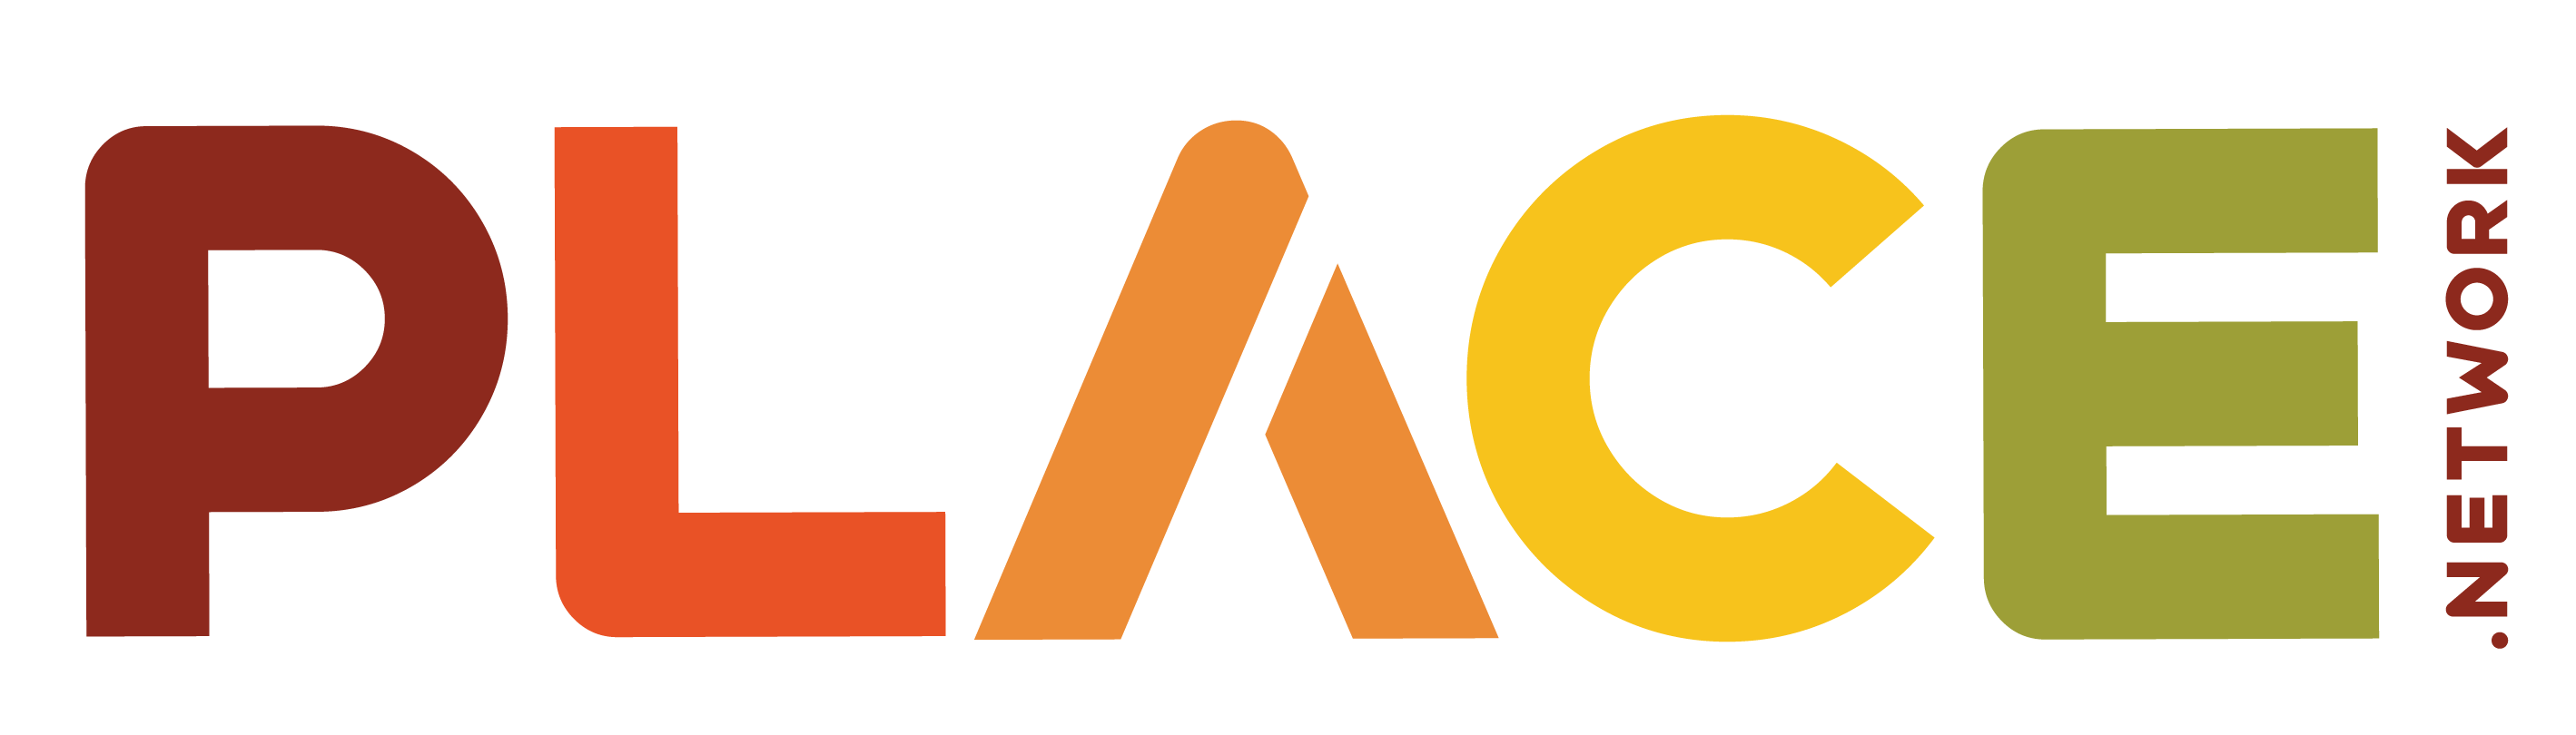 PLACE.network-logo--long